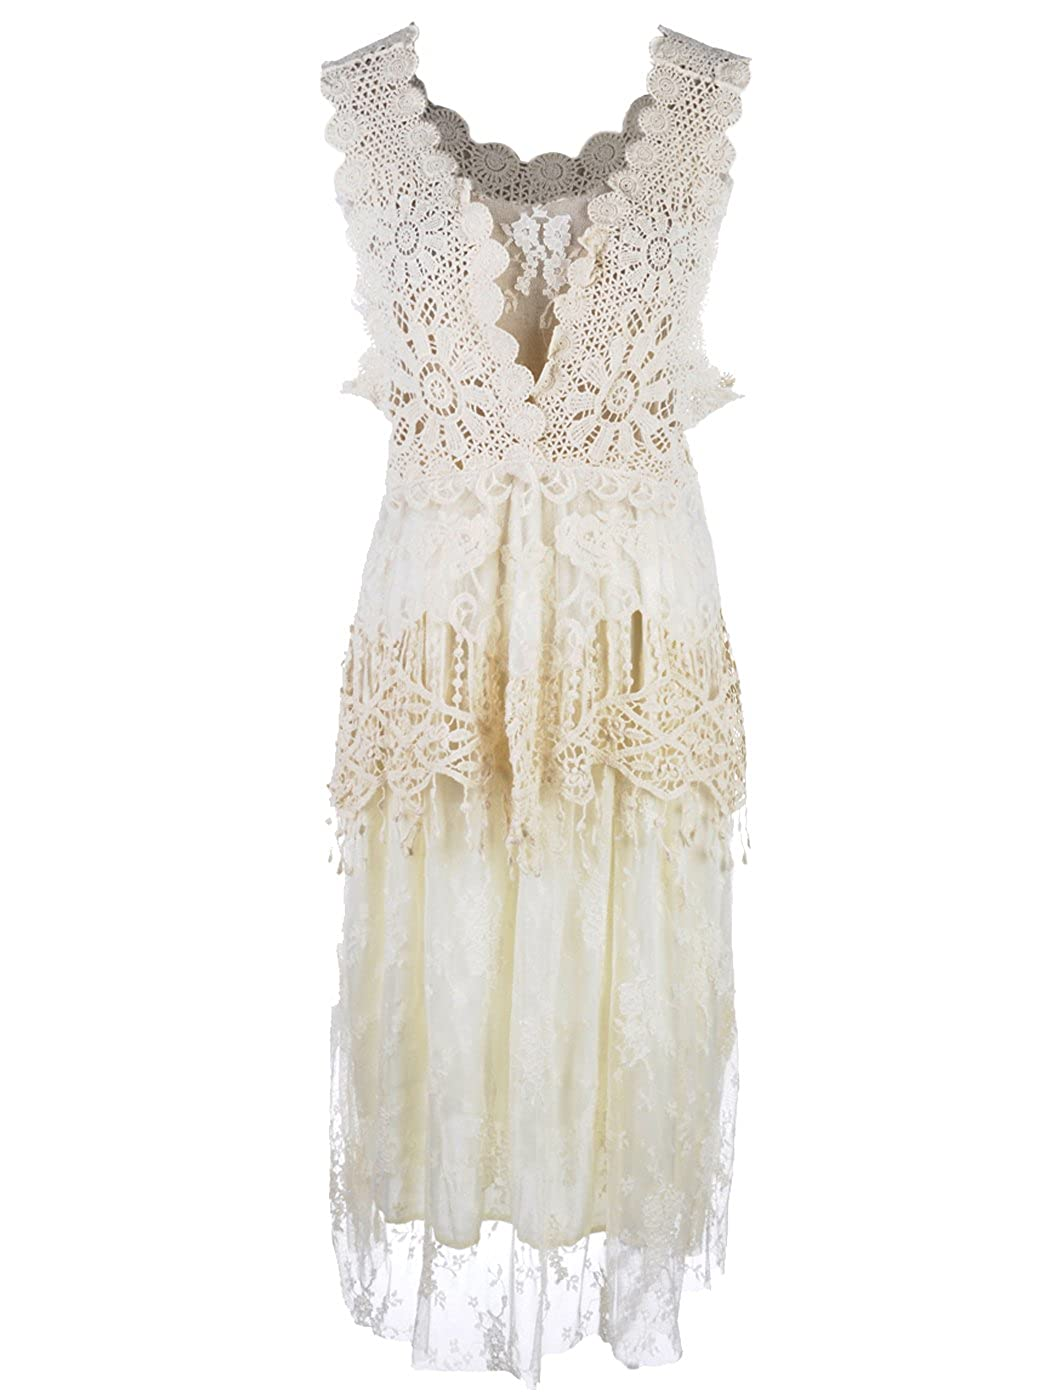 20s Dresses | 1920s Dresses for Sale Anna-Kaci Womens Vintage Granny Influence Embroidery Detail Lace Ruffle Dress $47.90 AT vintagedancer.com